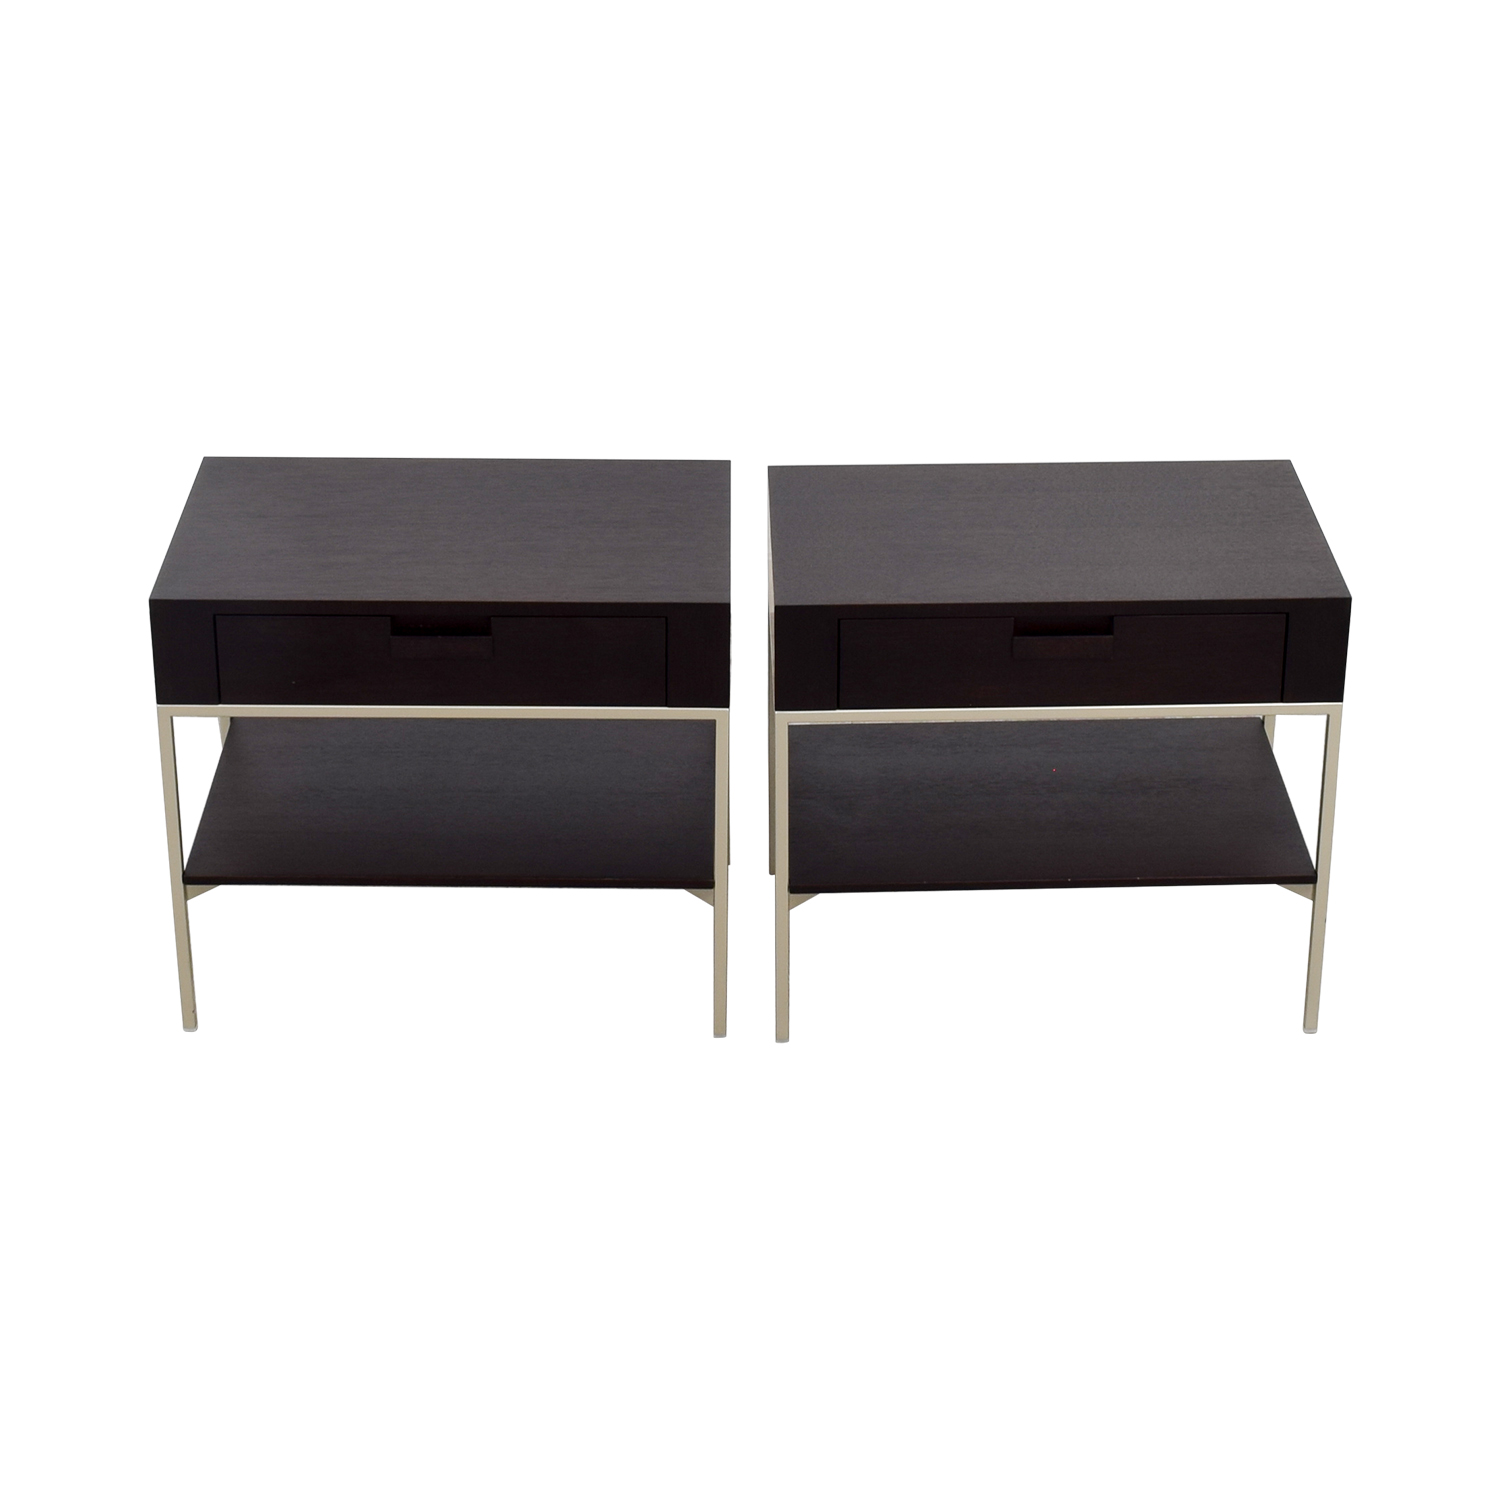 52% OFF B&B Italia B&B Italia Max Alto Dark Wood Side Tables